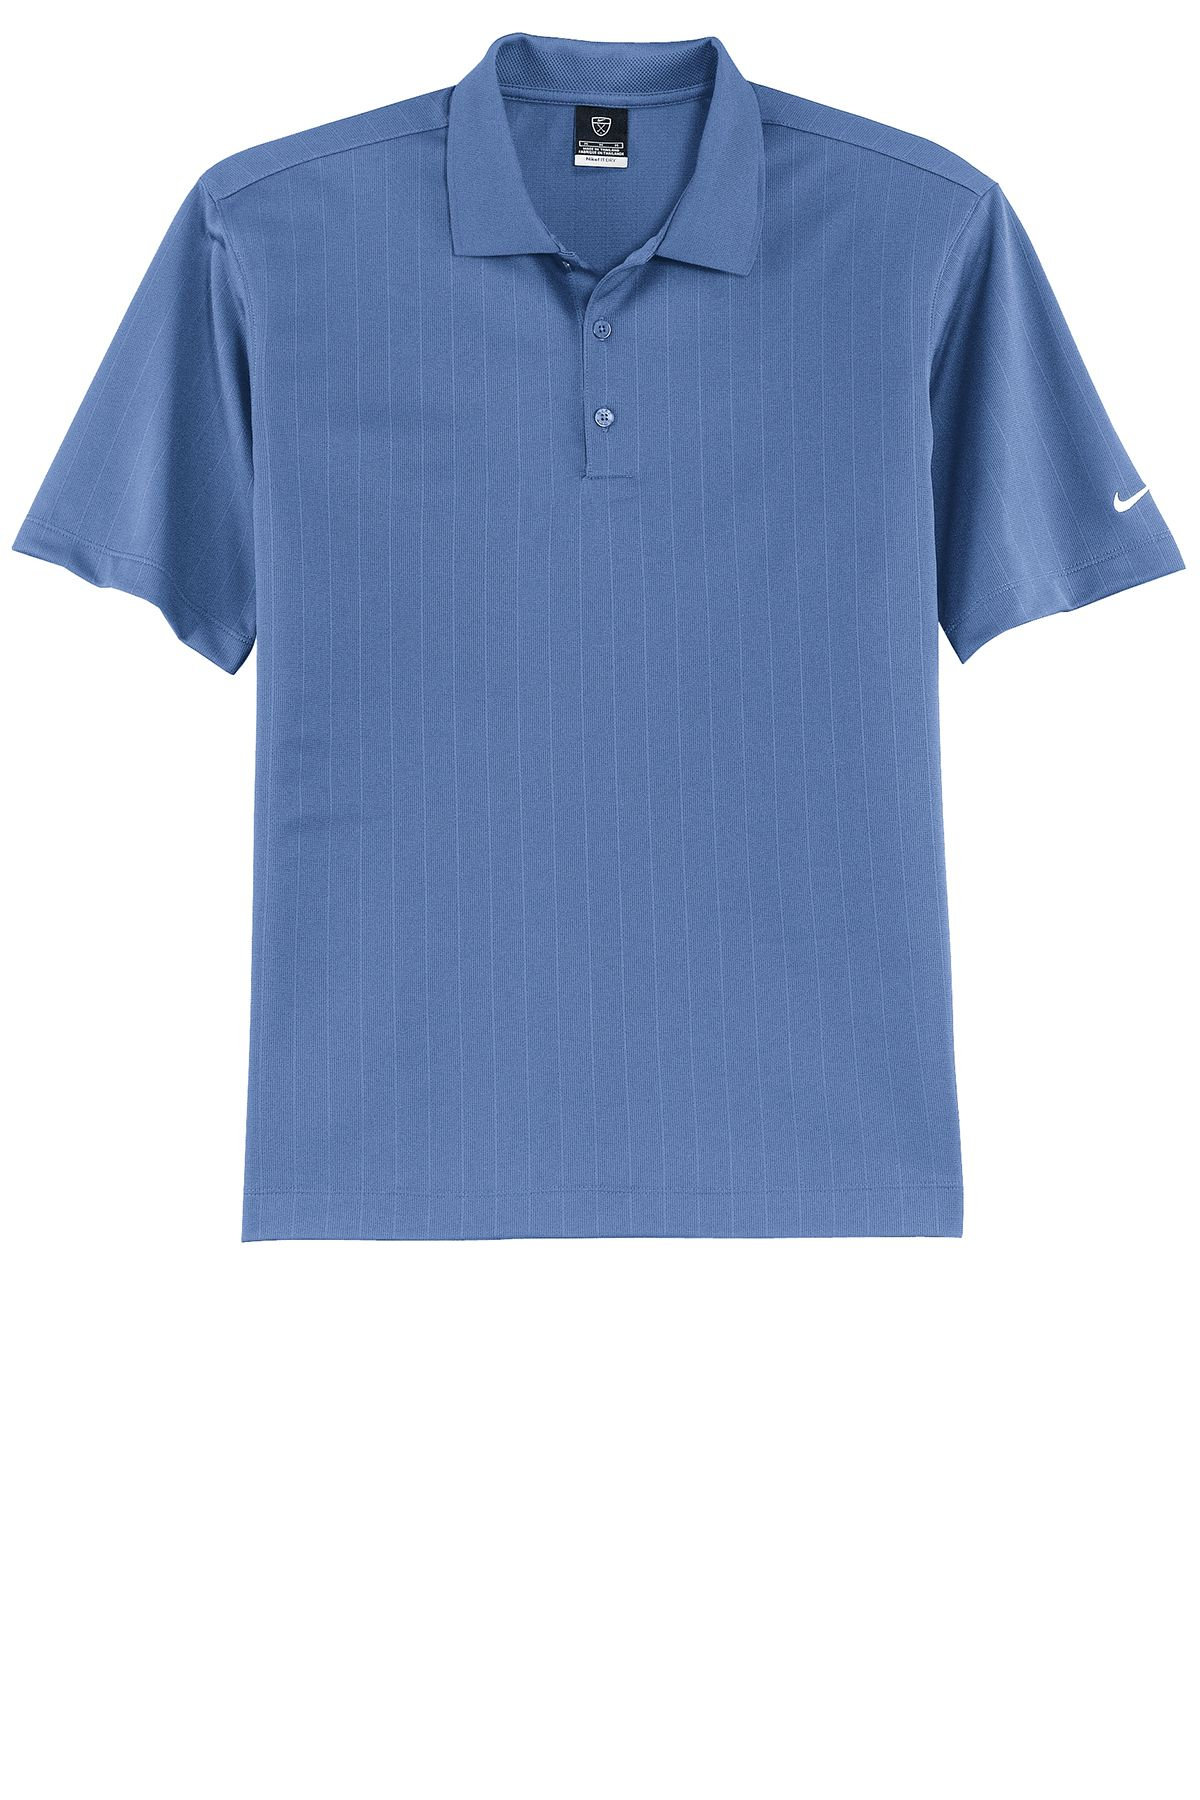 6947a54b Subtle texture gives this high-performance polo immediate impact. Crafted  from Dri-FIT